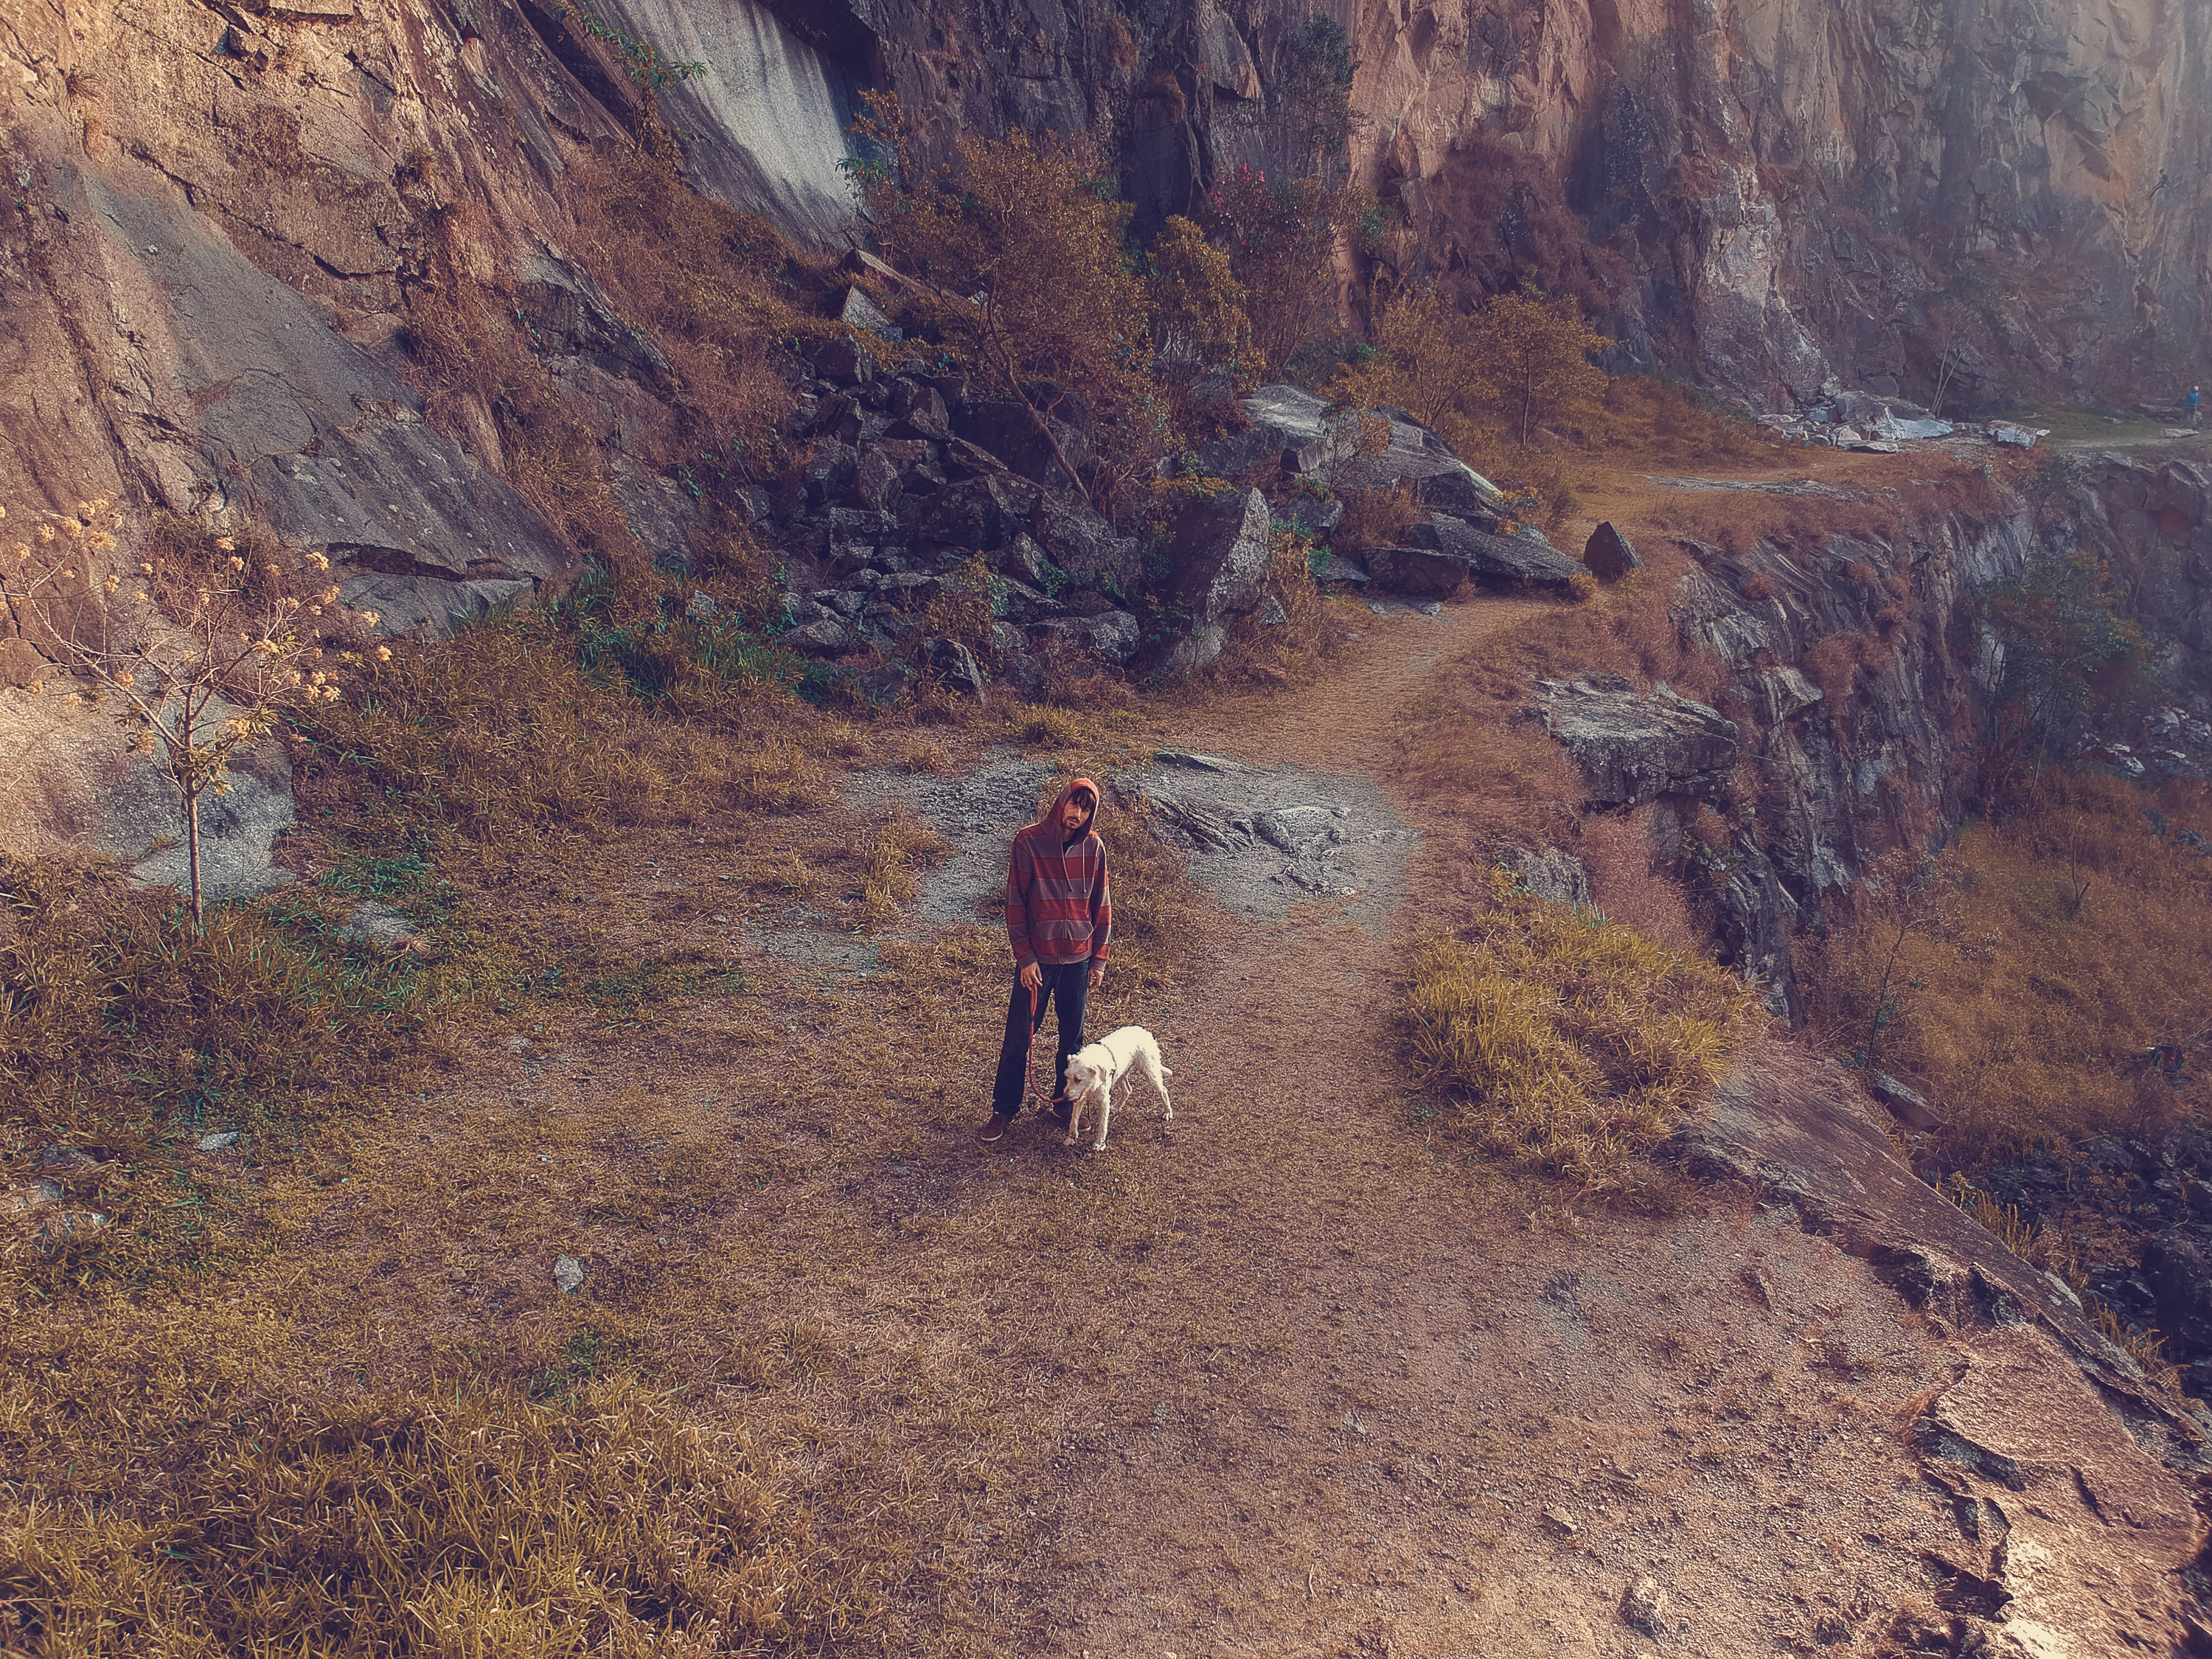 person and dog standing on cliff